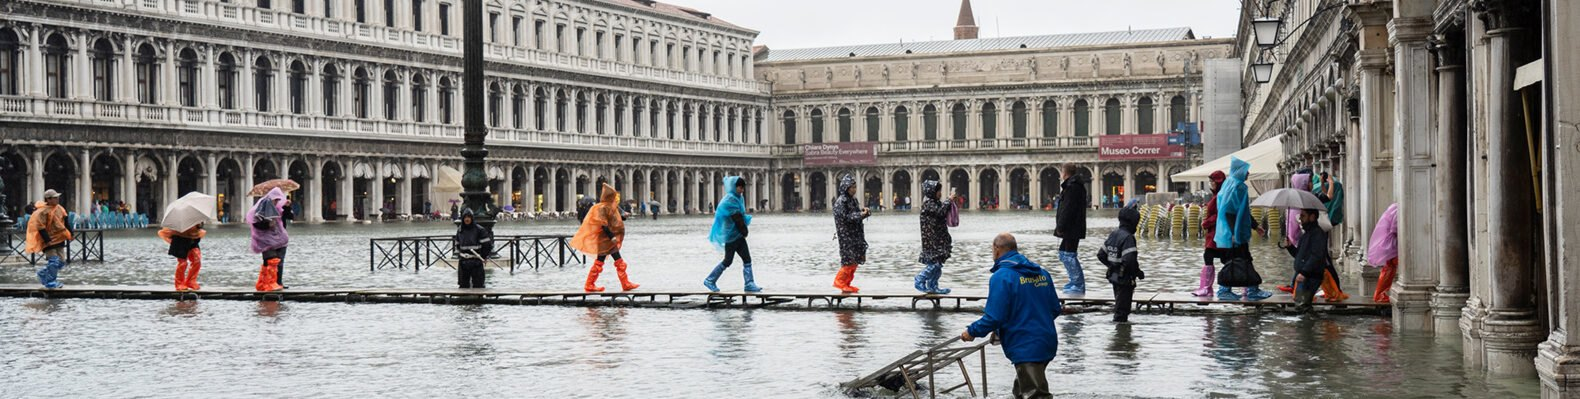 St. Marks Square in Venice during floods in November 2019